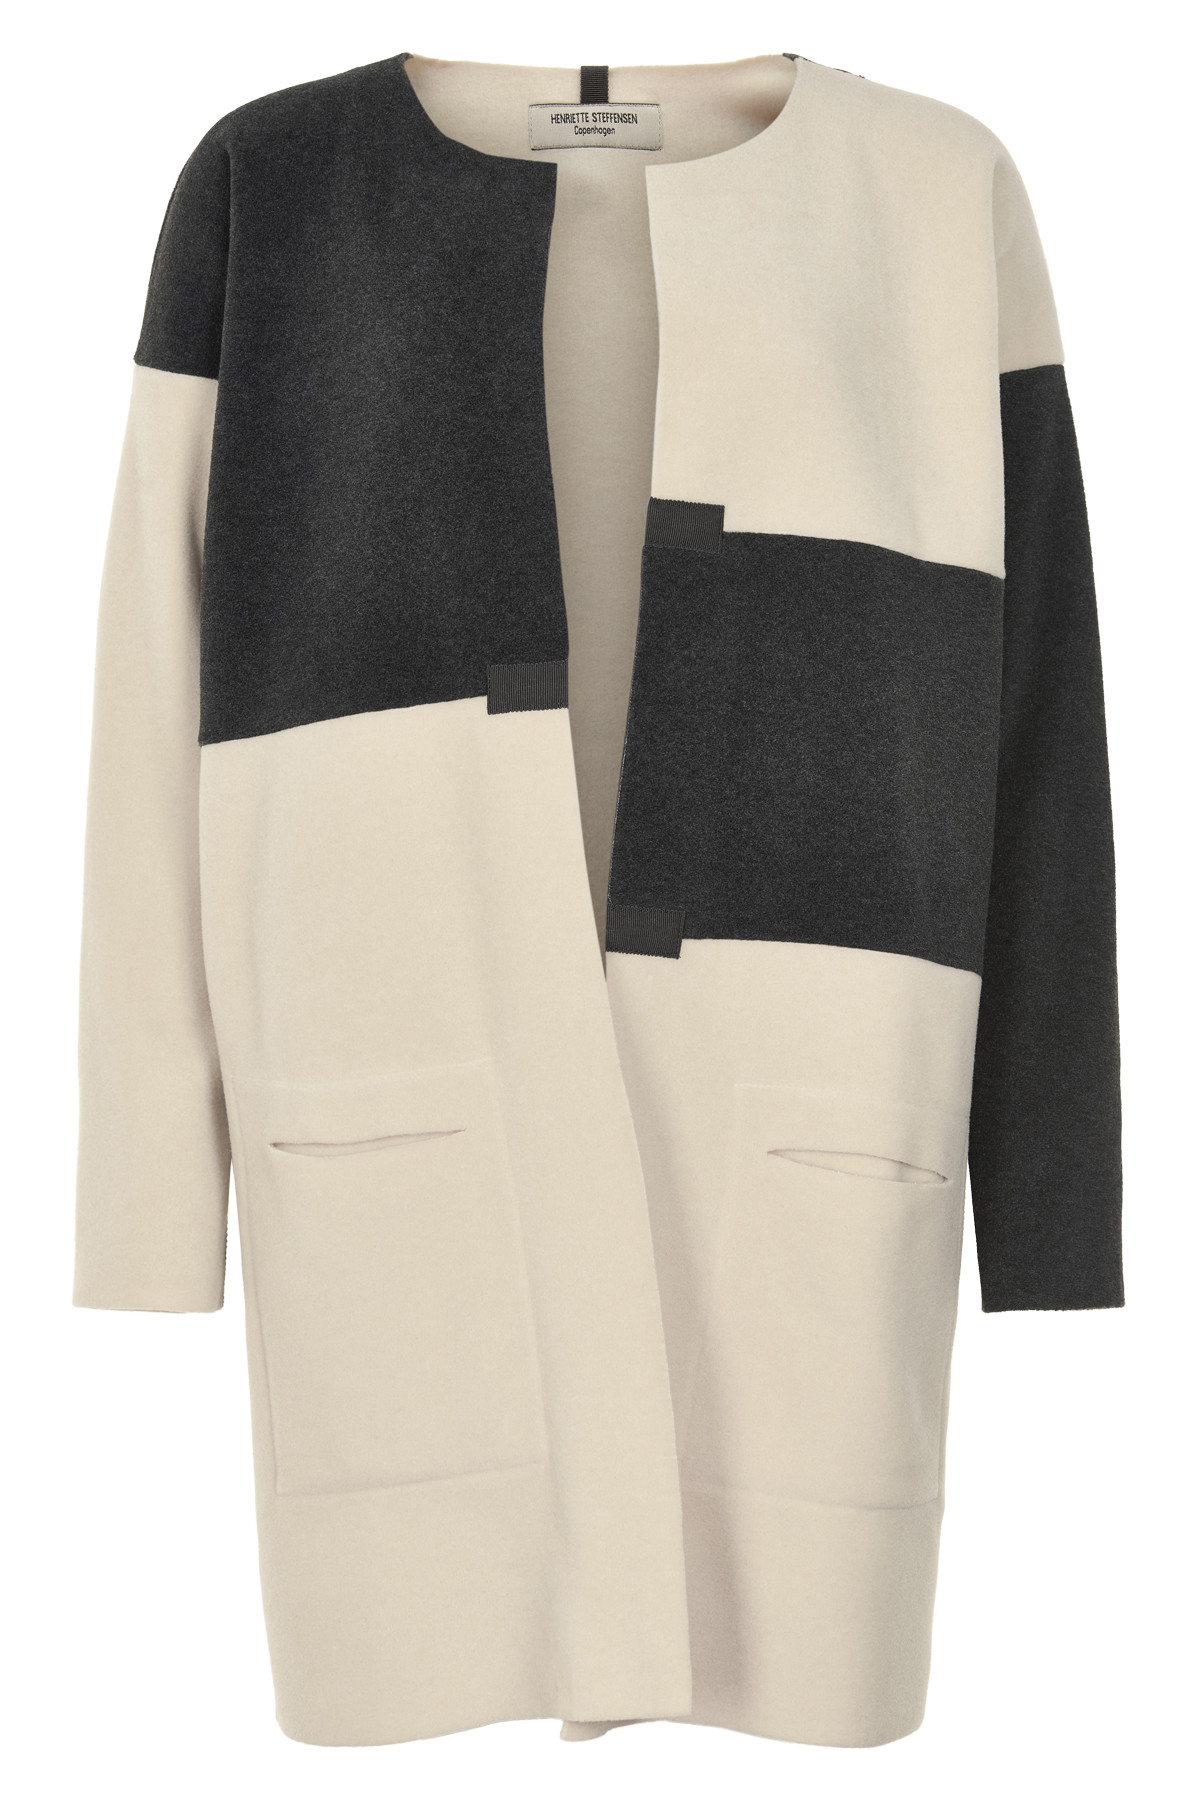 Image of   HENRIETTE STEFFENSEN Copenhagen 7116 CARDIGAN BLACK/WINTER WHITE (Black/Winter/White, ONESIZE)